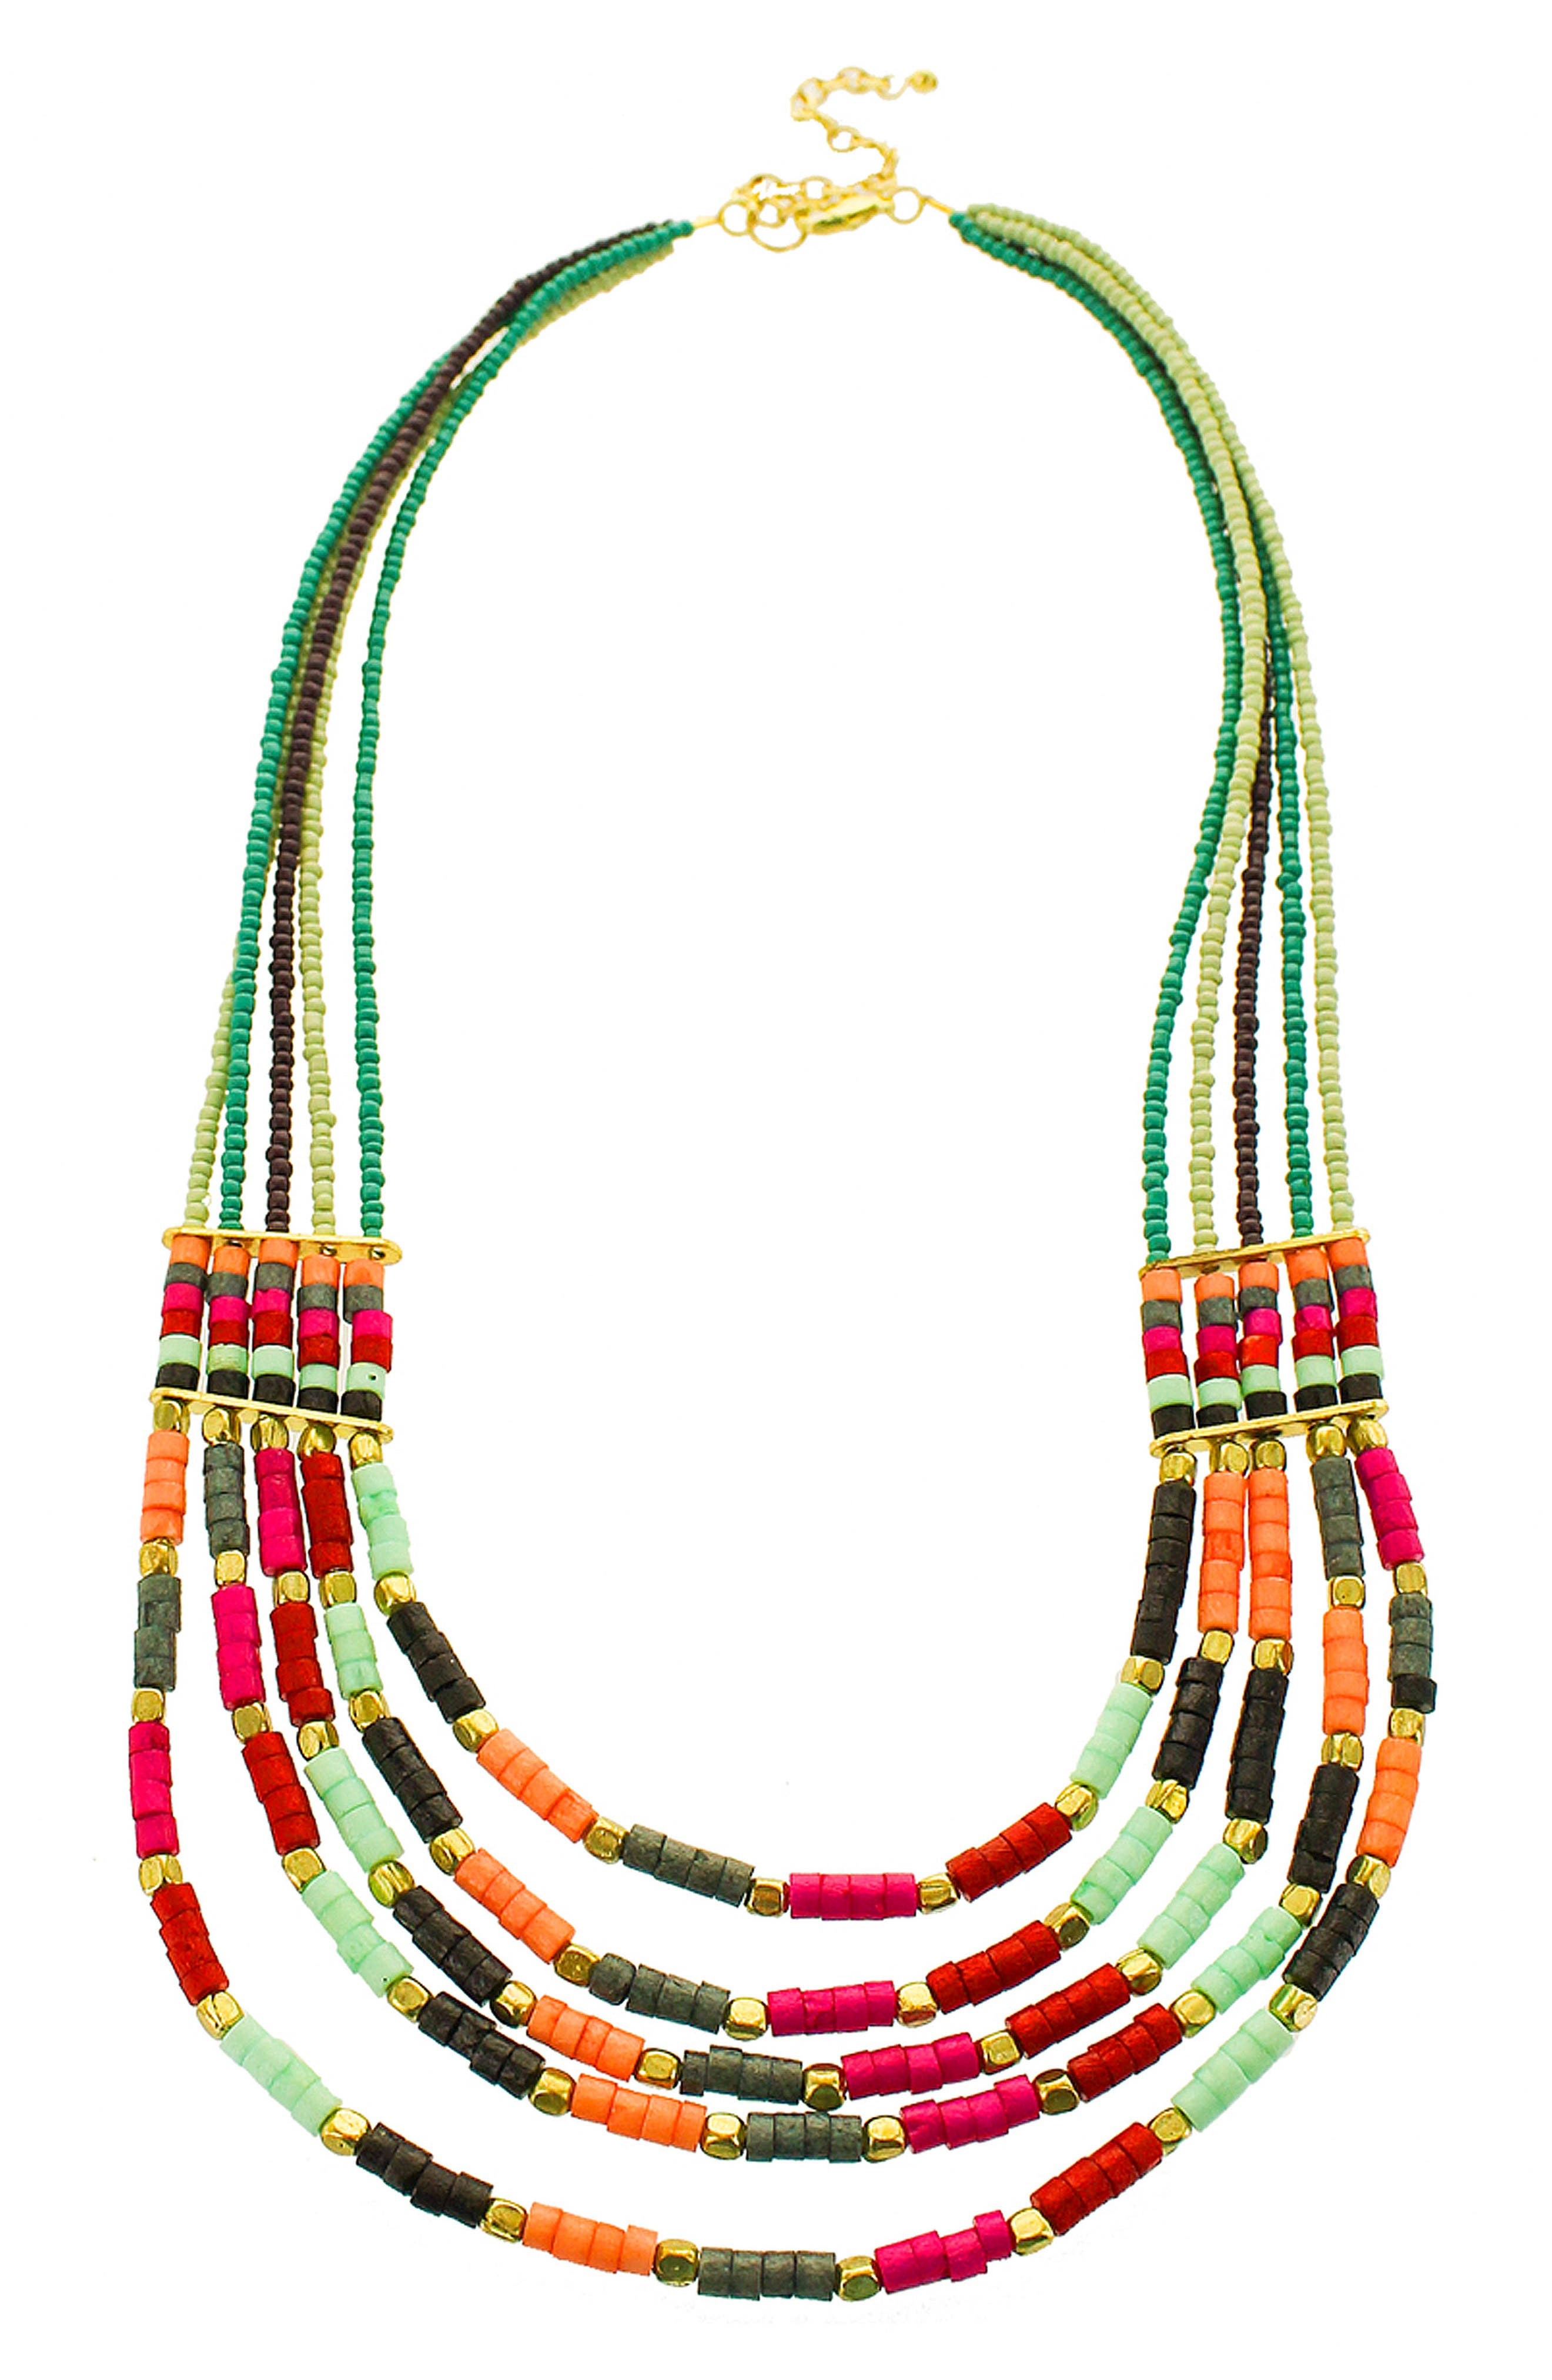 Multistrand Seed Bead Necklace,                             Main thumbnail 1, color,                             300